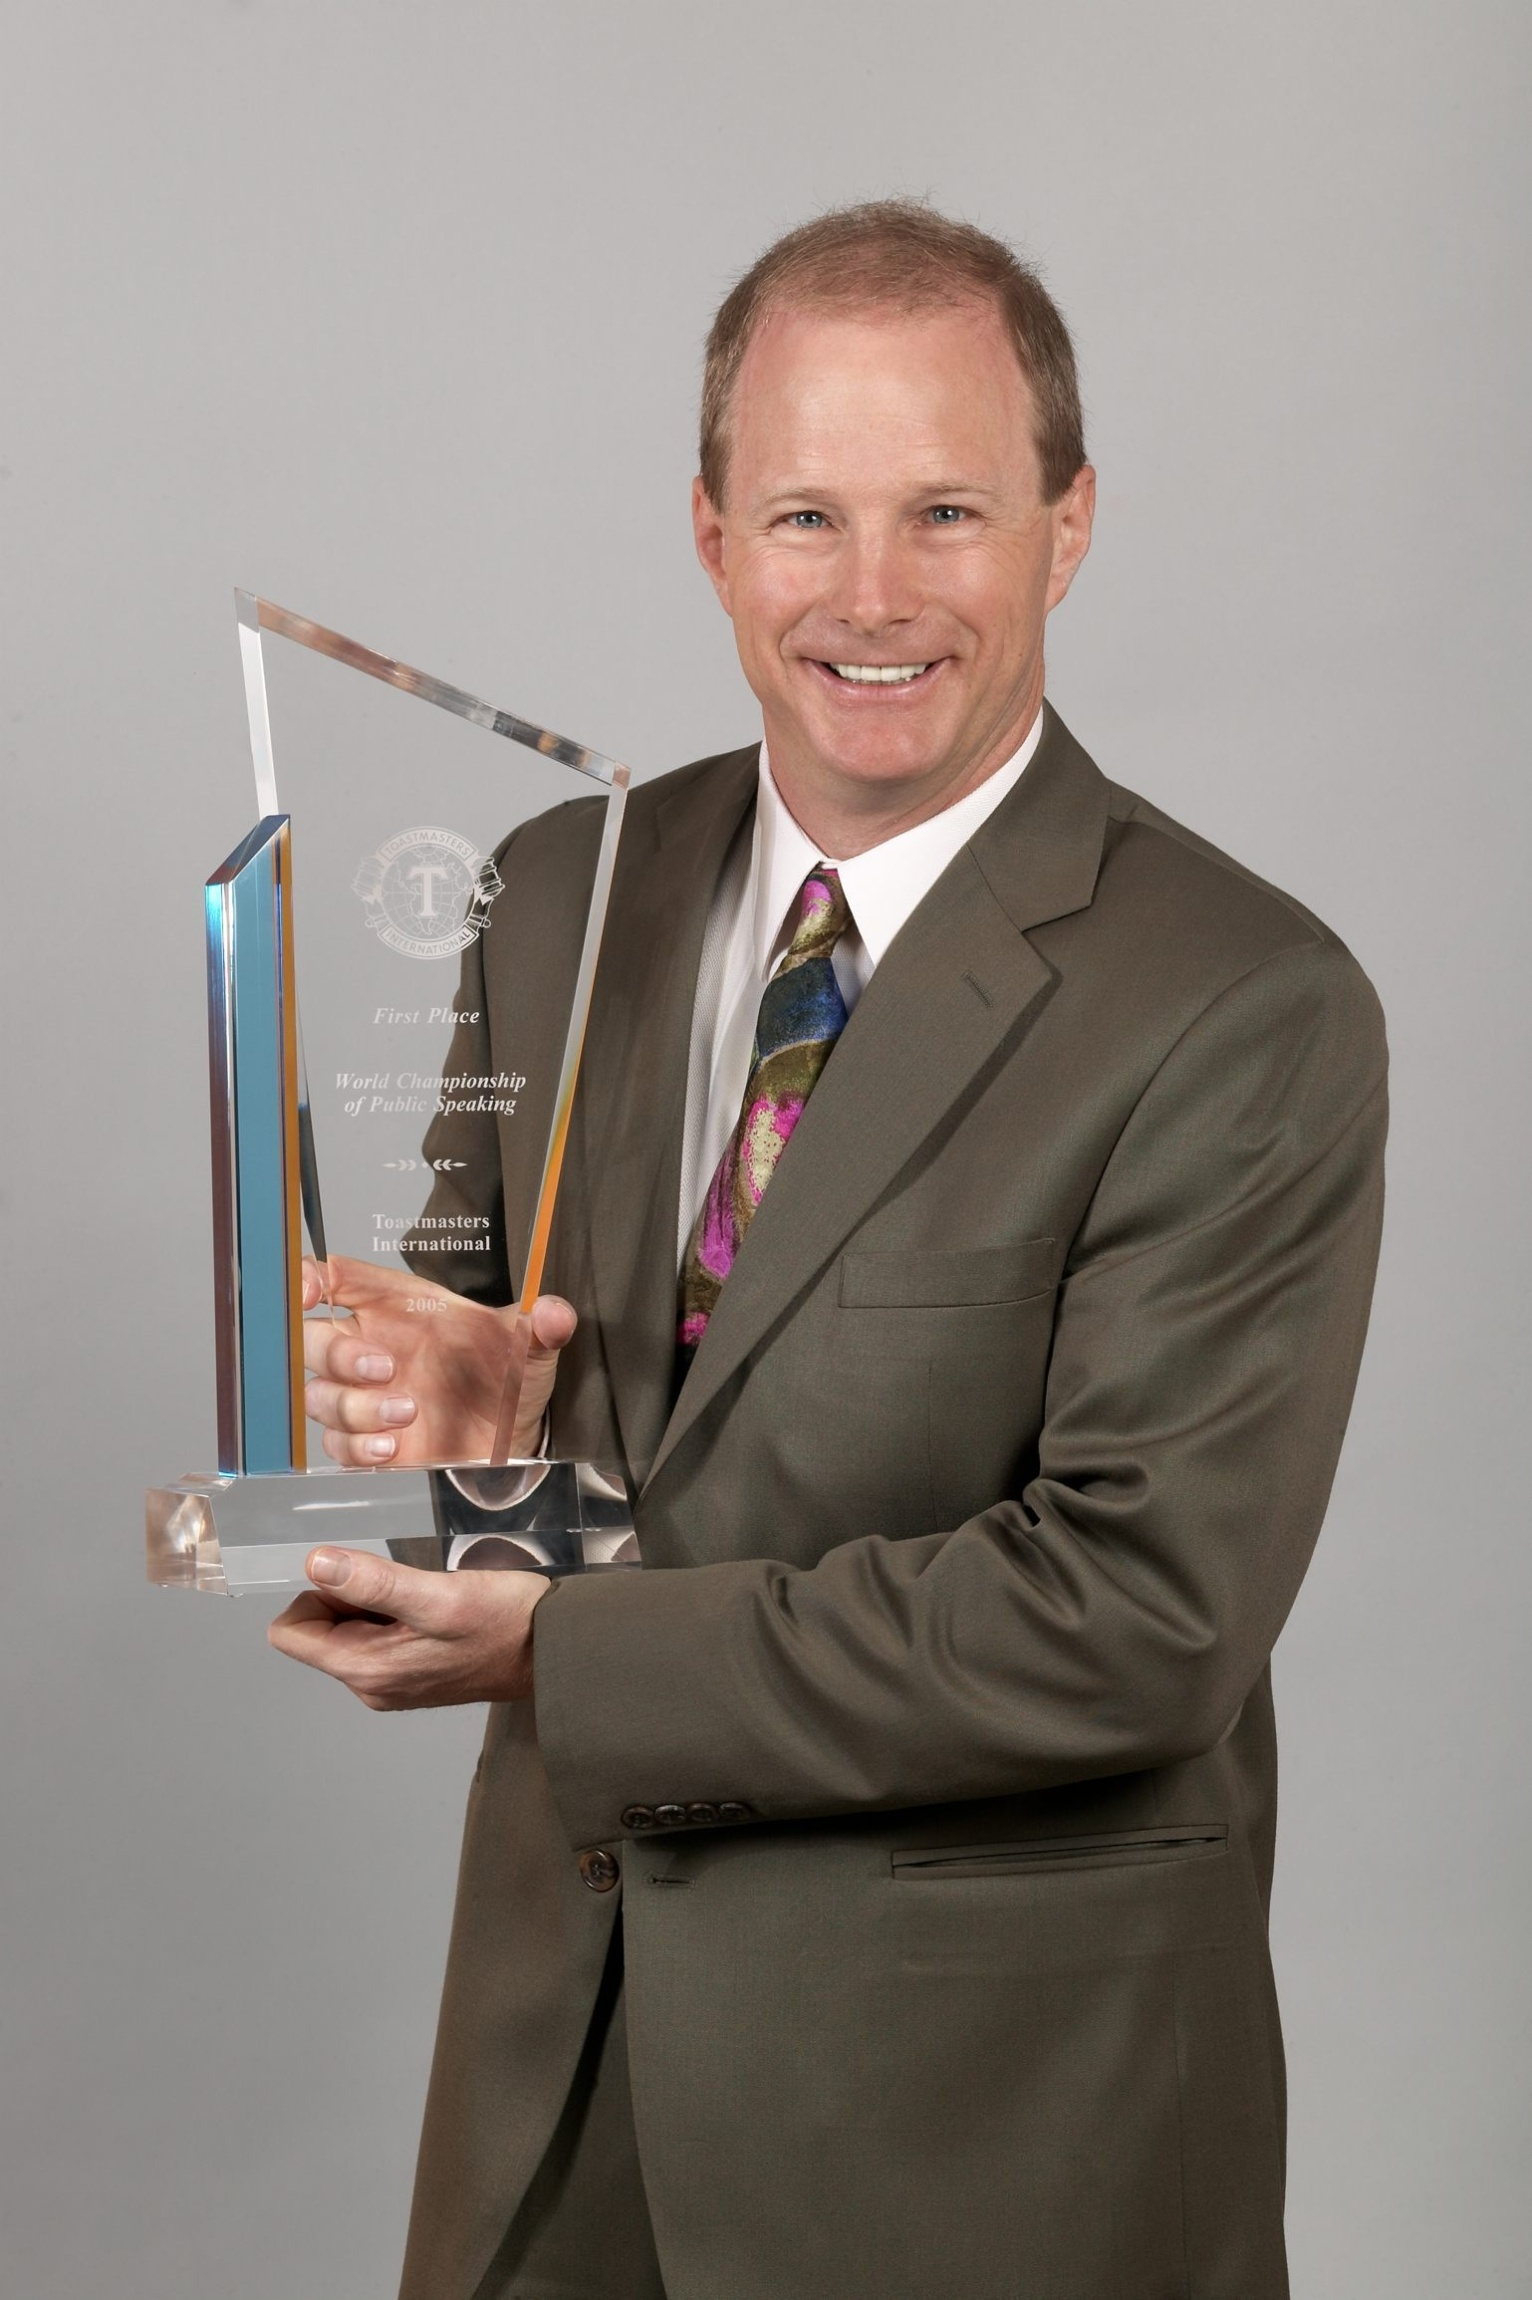 Lance Miller - 2005 World Champion of Public Speaking